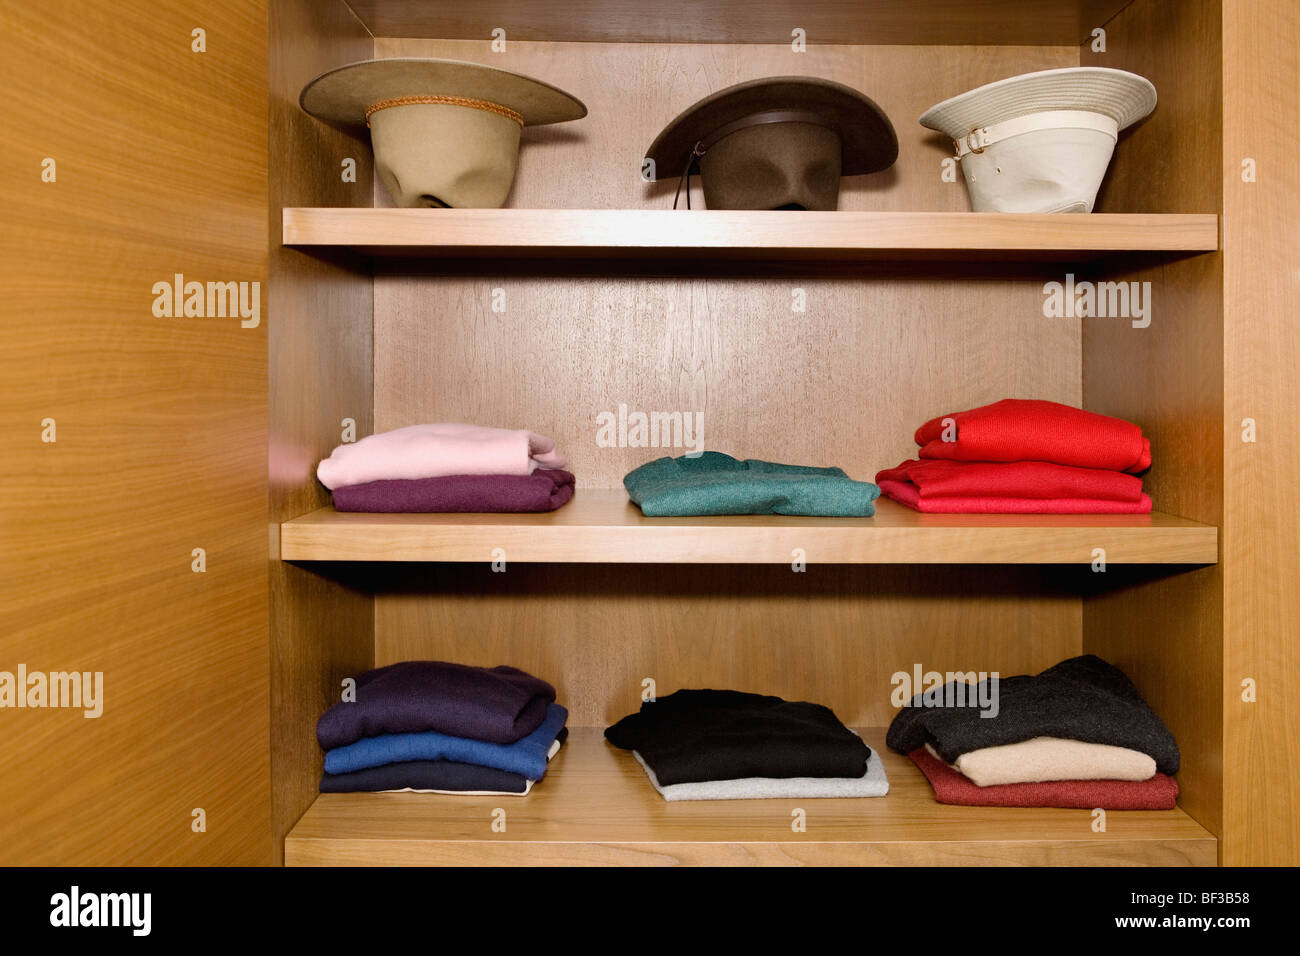 Clothes on shelves - Stock Image